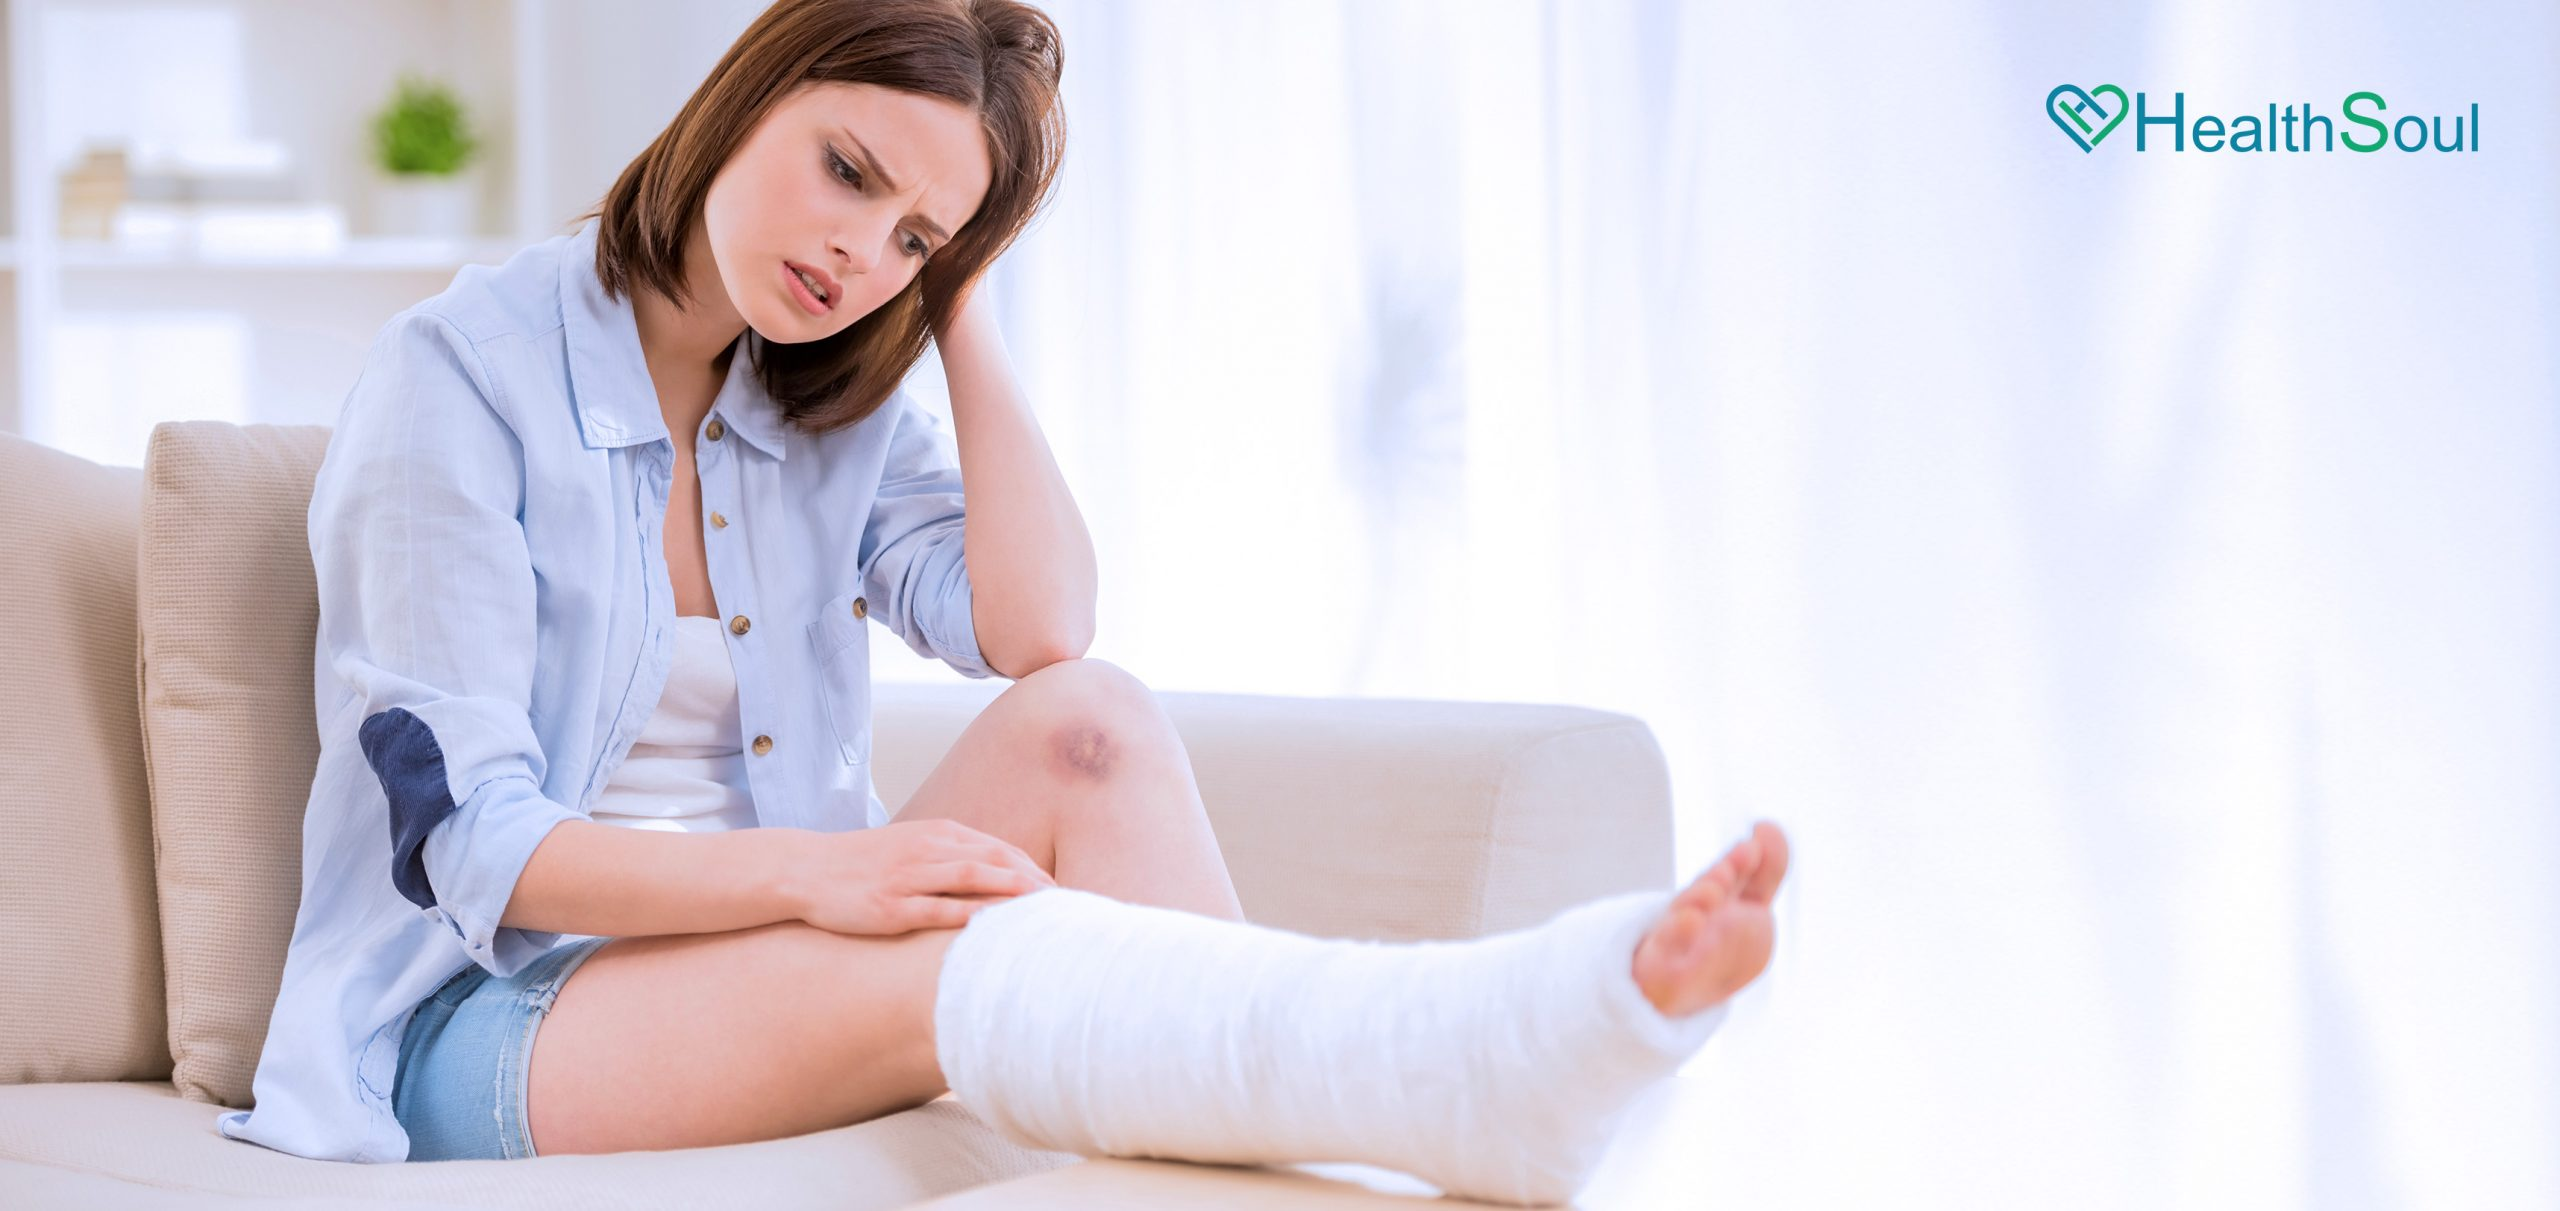 How To Recover From An Injury And Get Your Life Back On Track | HealthSoul